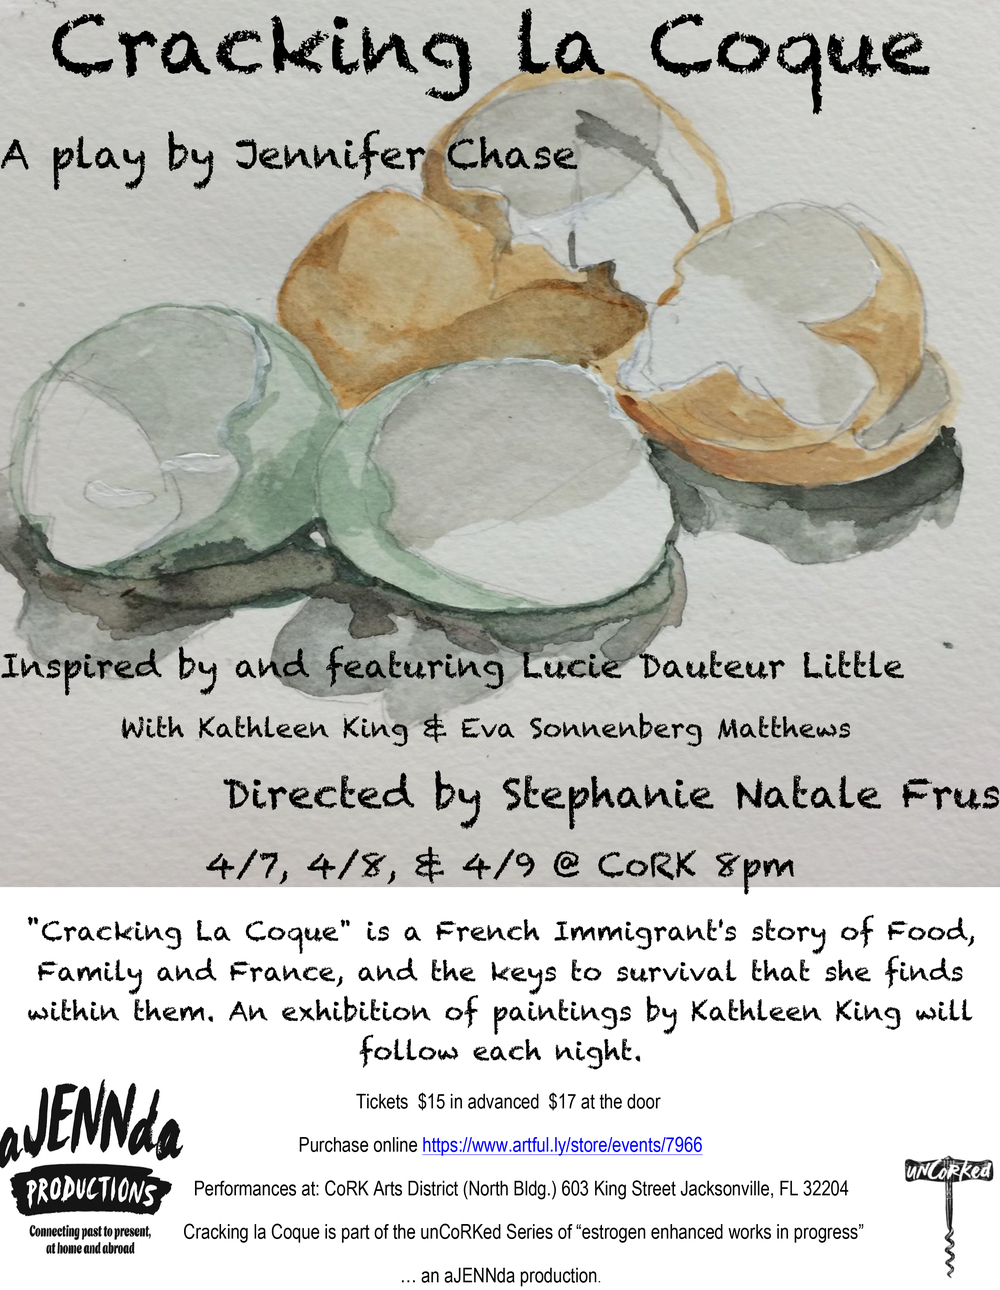 "It is with great excitement that I share with you my latest play in progress, Cracking la Coque, a French immigrant's story of Family, Food and France and the keys to survival she finds in all of them. This story is inspired by Lucie Dauteur Little of The Little Family Crêpes. The play features Lucie playing the main character, Vendeuse, inspired by her own story. Eva Sonnenberg Matthews plays Apprentice and Kathleen Noel King as artist. An exhibition of inspired original paintings by Kathleen King will also follow each performance. The play will be April 7, 8 and 9th at 8pm at CoRK Arts District (North Bldg.) 603 King Street. Tickets are available on line: https://www.artful.ly/store/events/7966 This piece is part of The unCoRKed series of ""Estrogen Enhanced Works in Progress""- an aJENNda production. A flyer with more info is attached. We'd love to see you at the show! Warm regards, Jennifer"